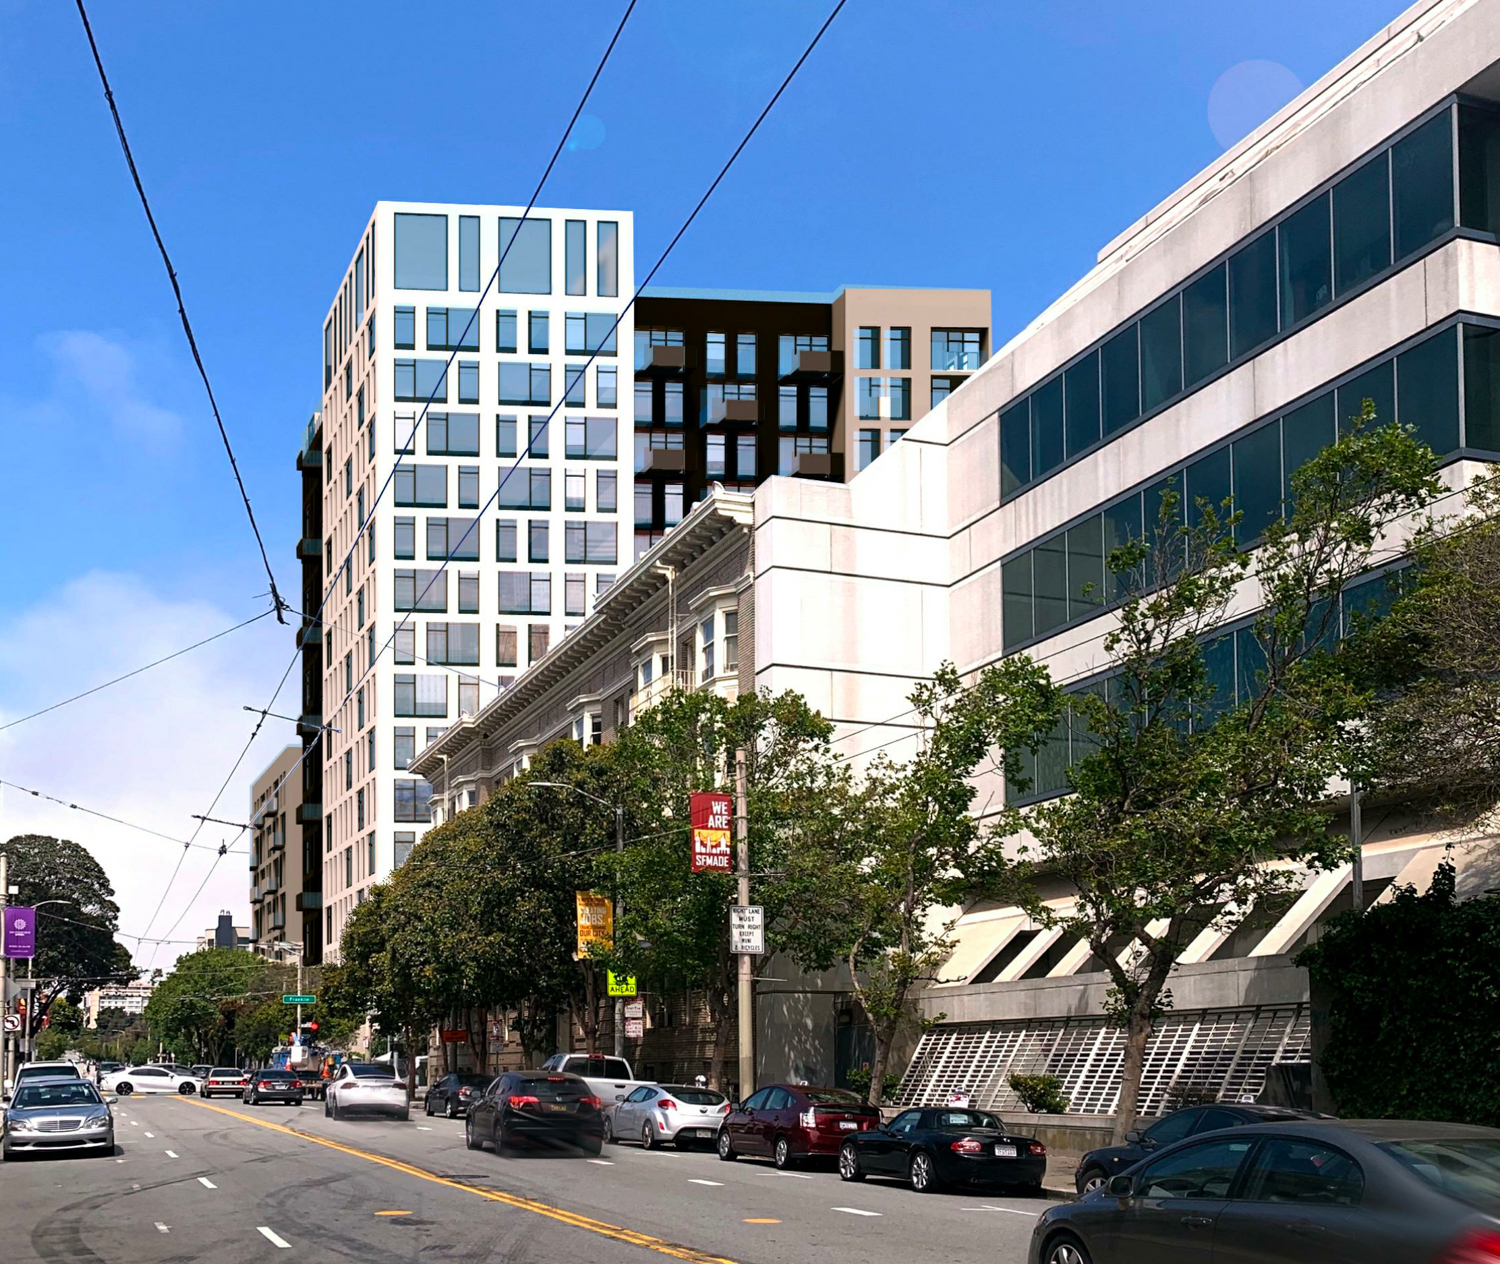 600 McAllister Street looking east, rendering by David Baker Architects